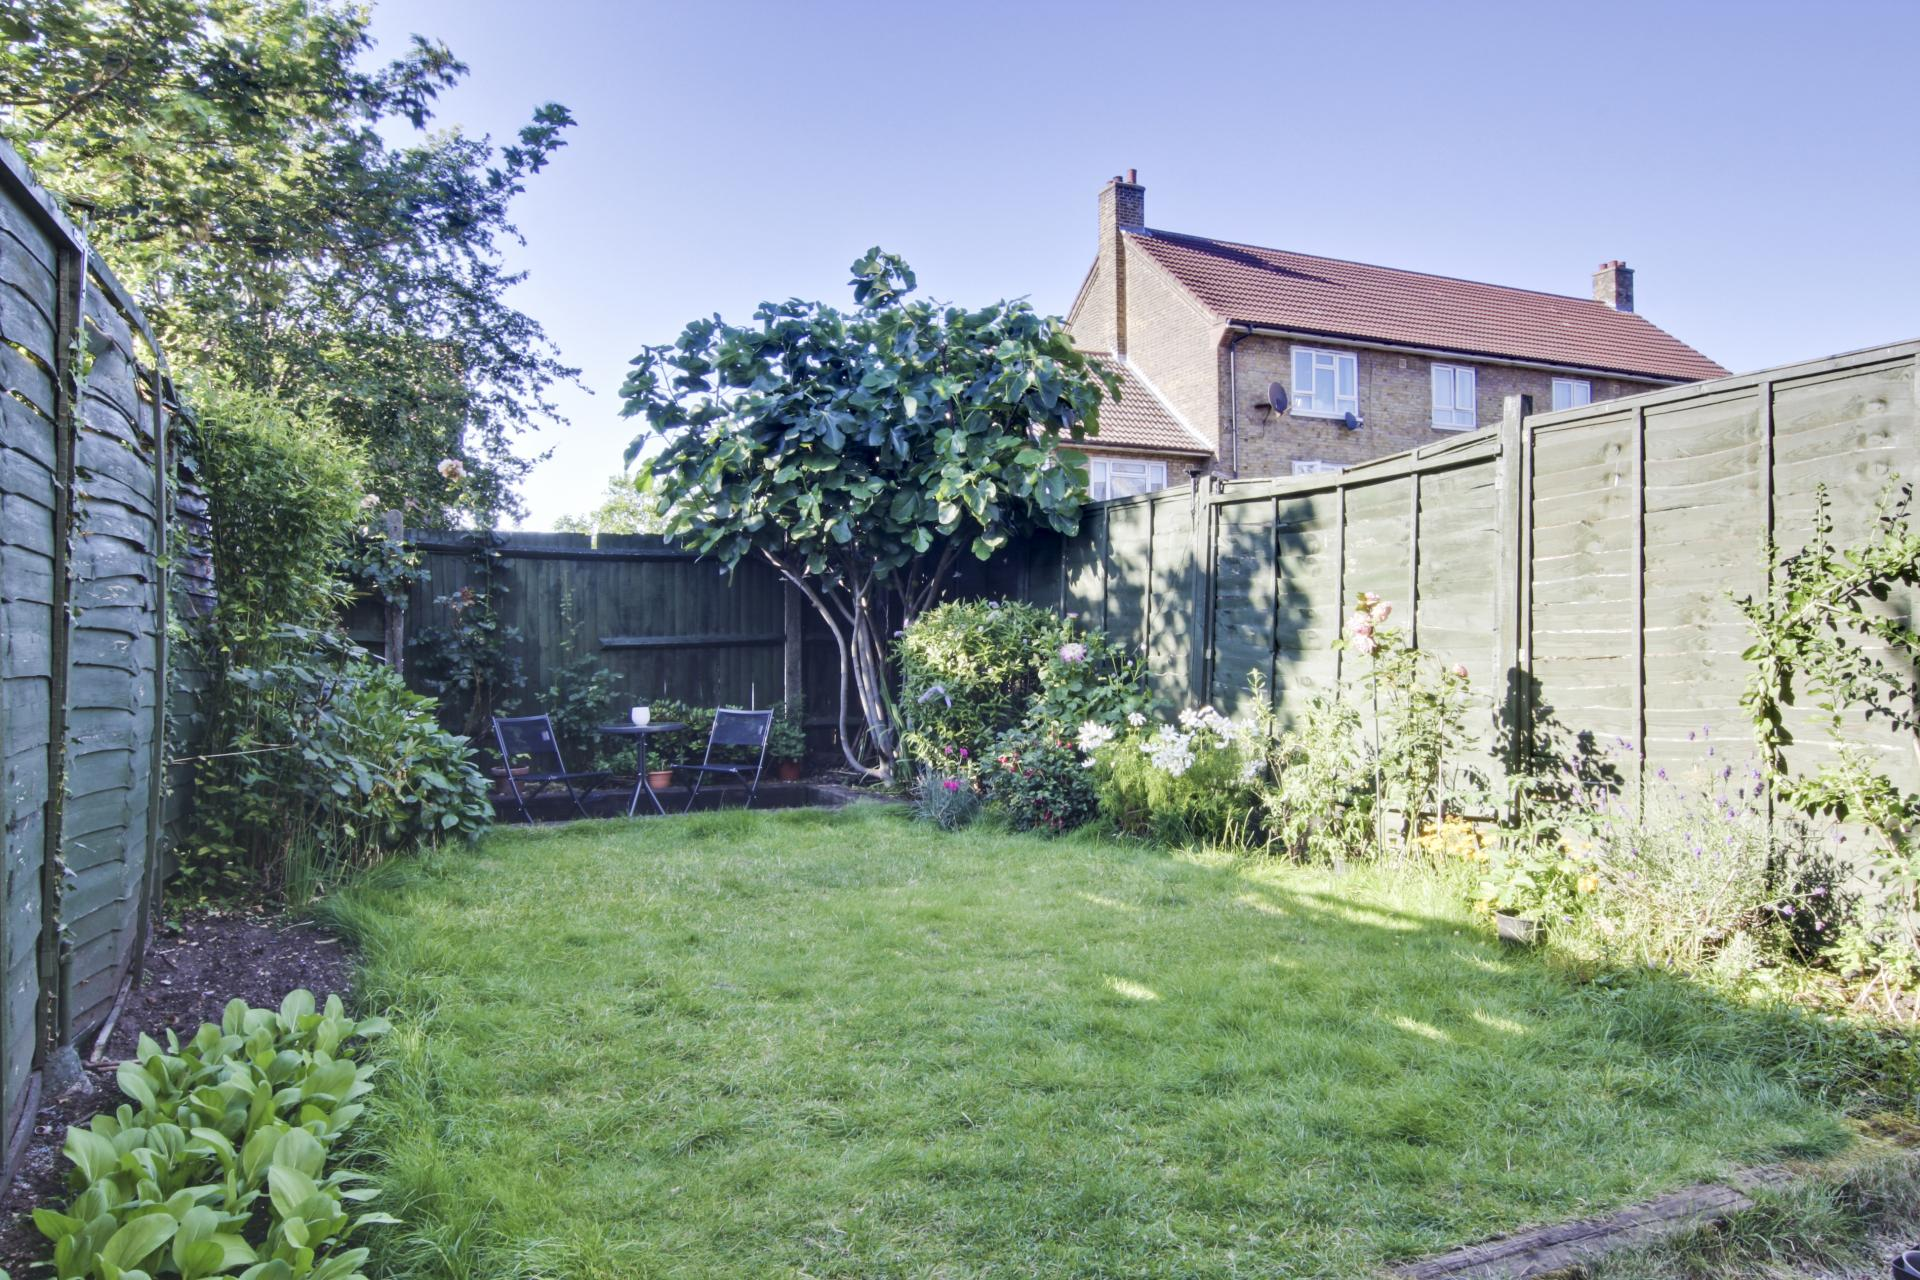 3 Bedroom House For Sale In Charlton